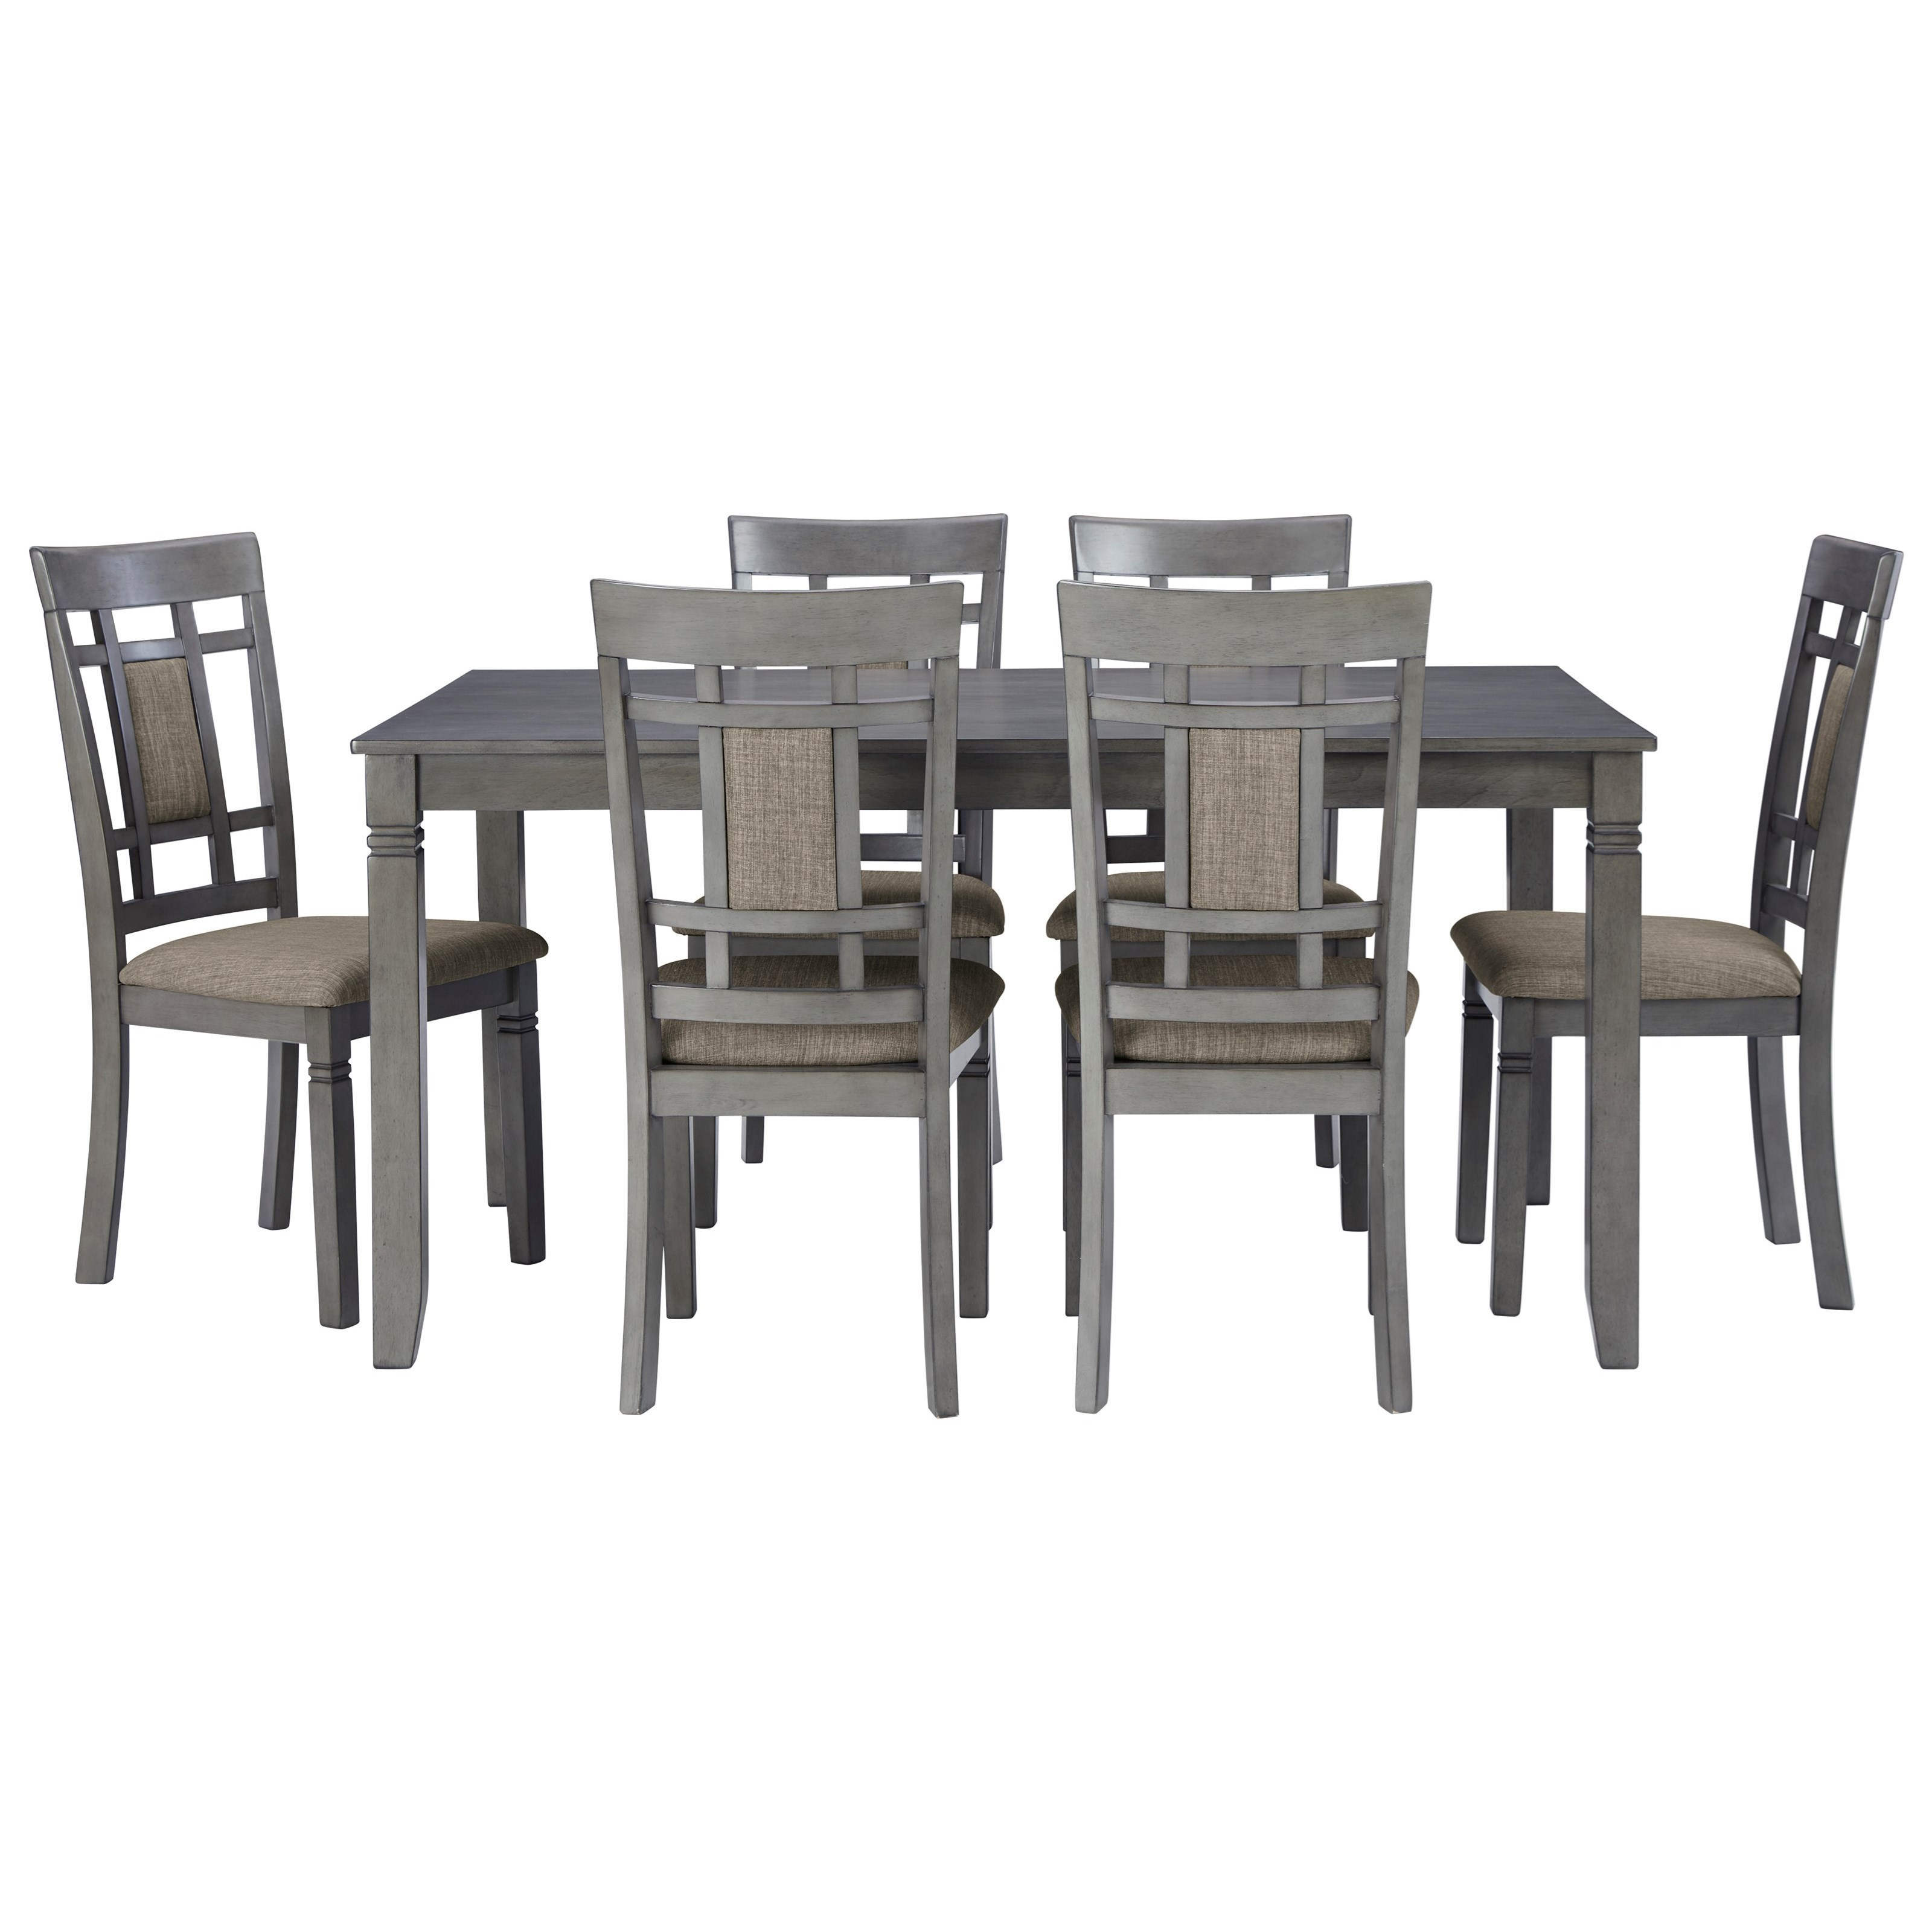 7-Piece Dining Table and Chairs Set